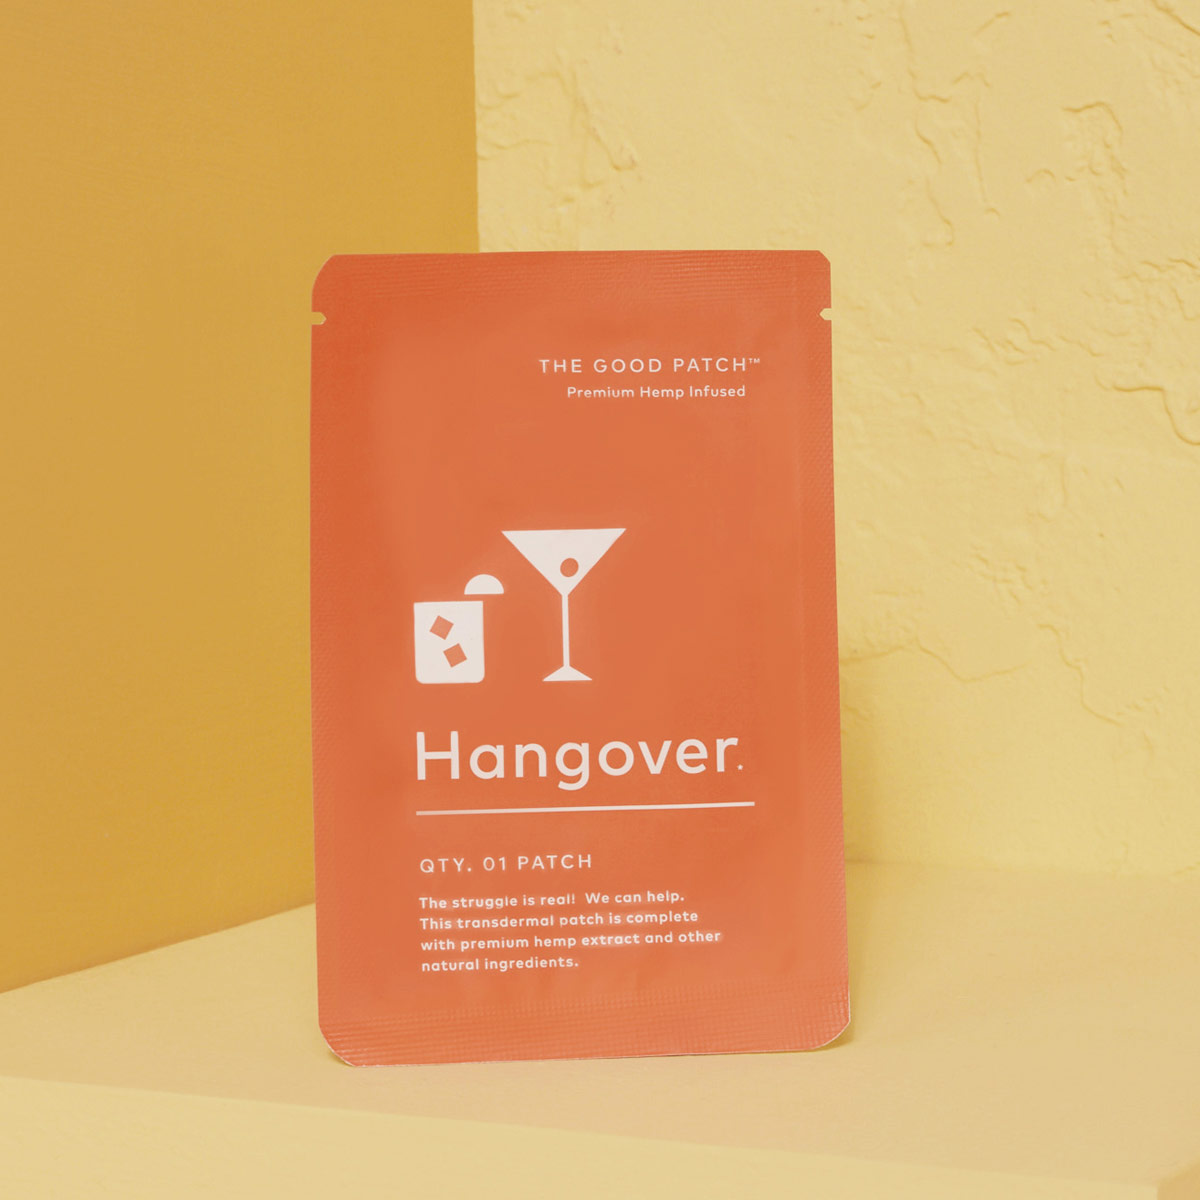 Hangover - The Good Patch